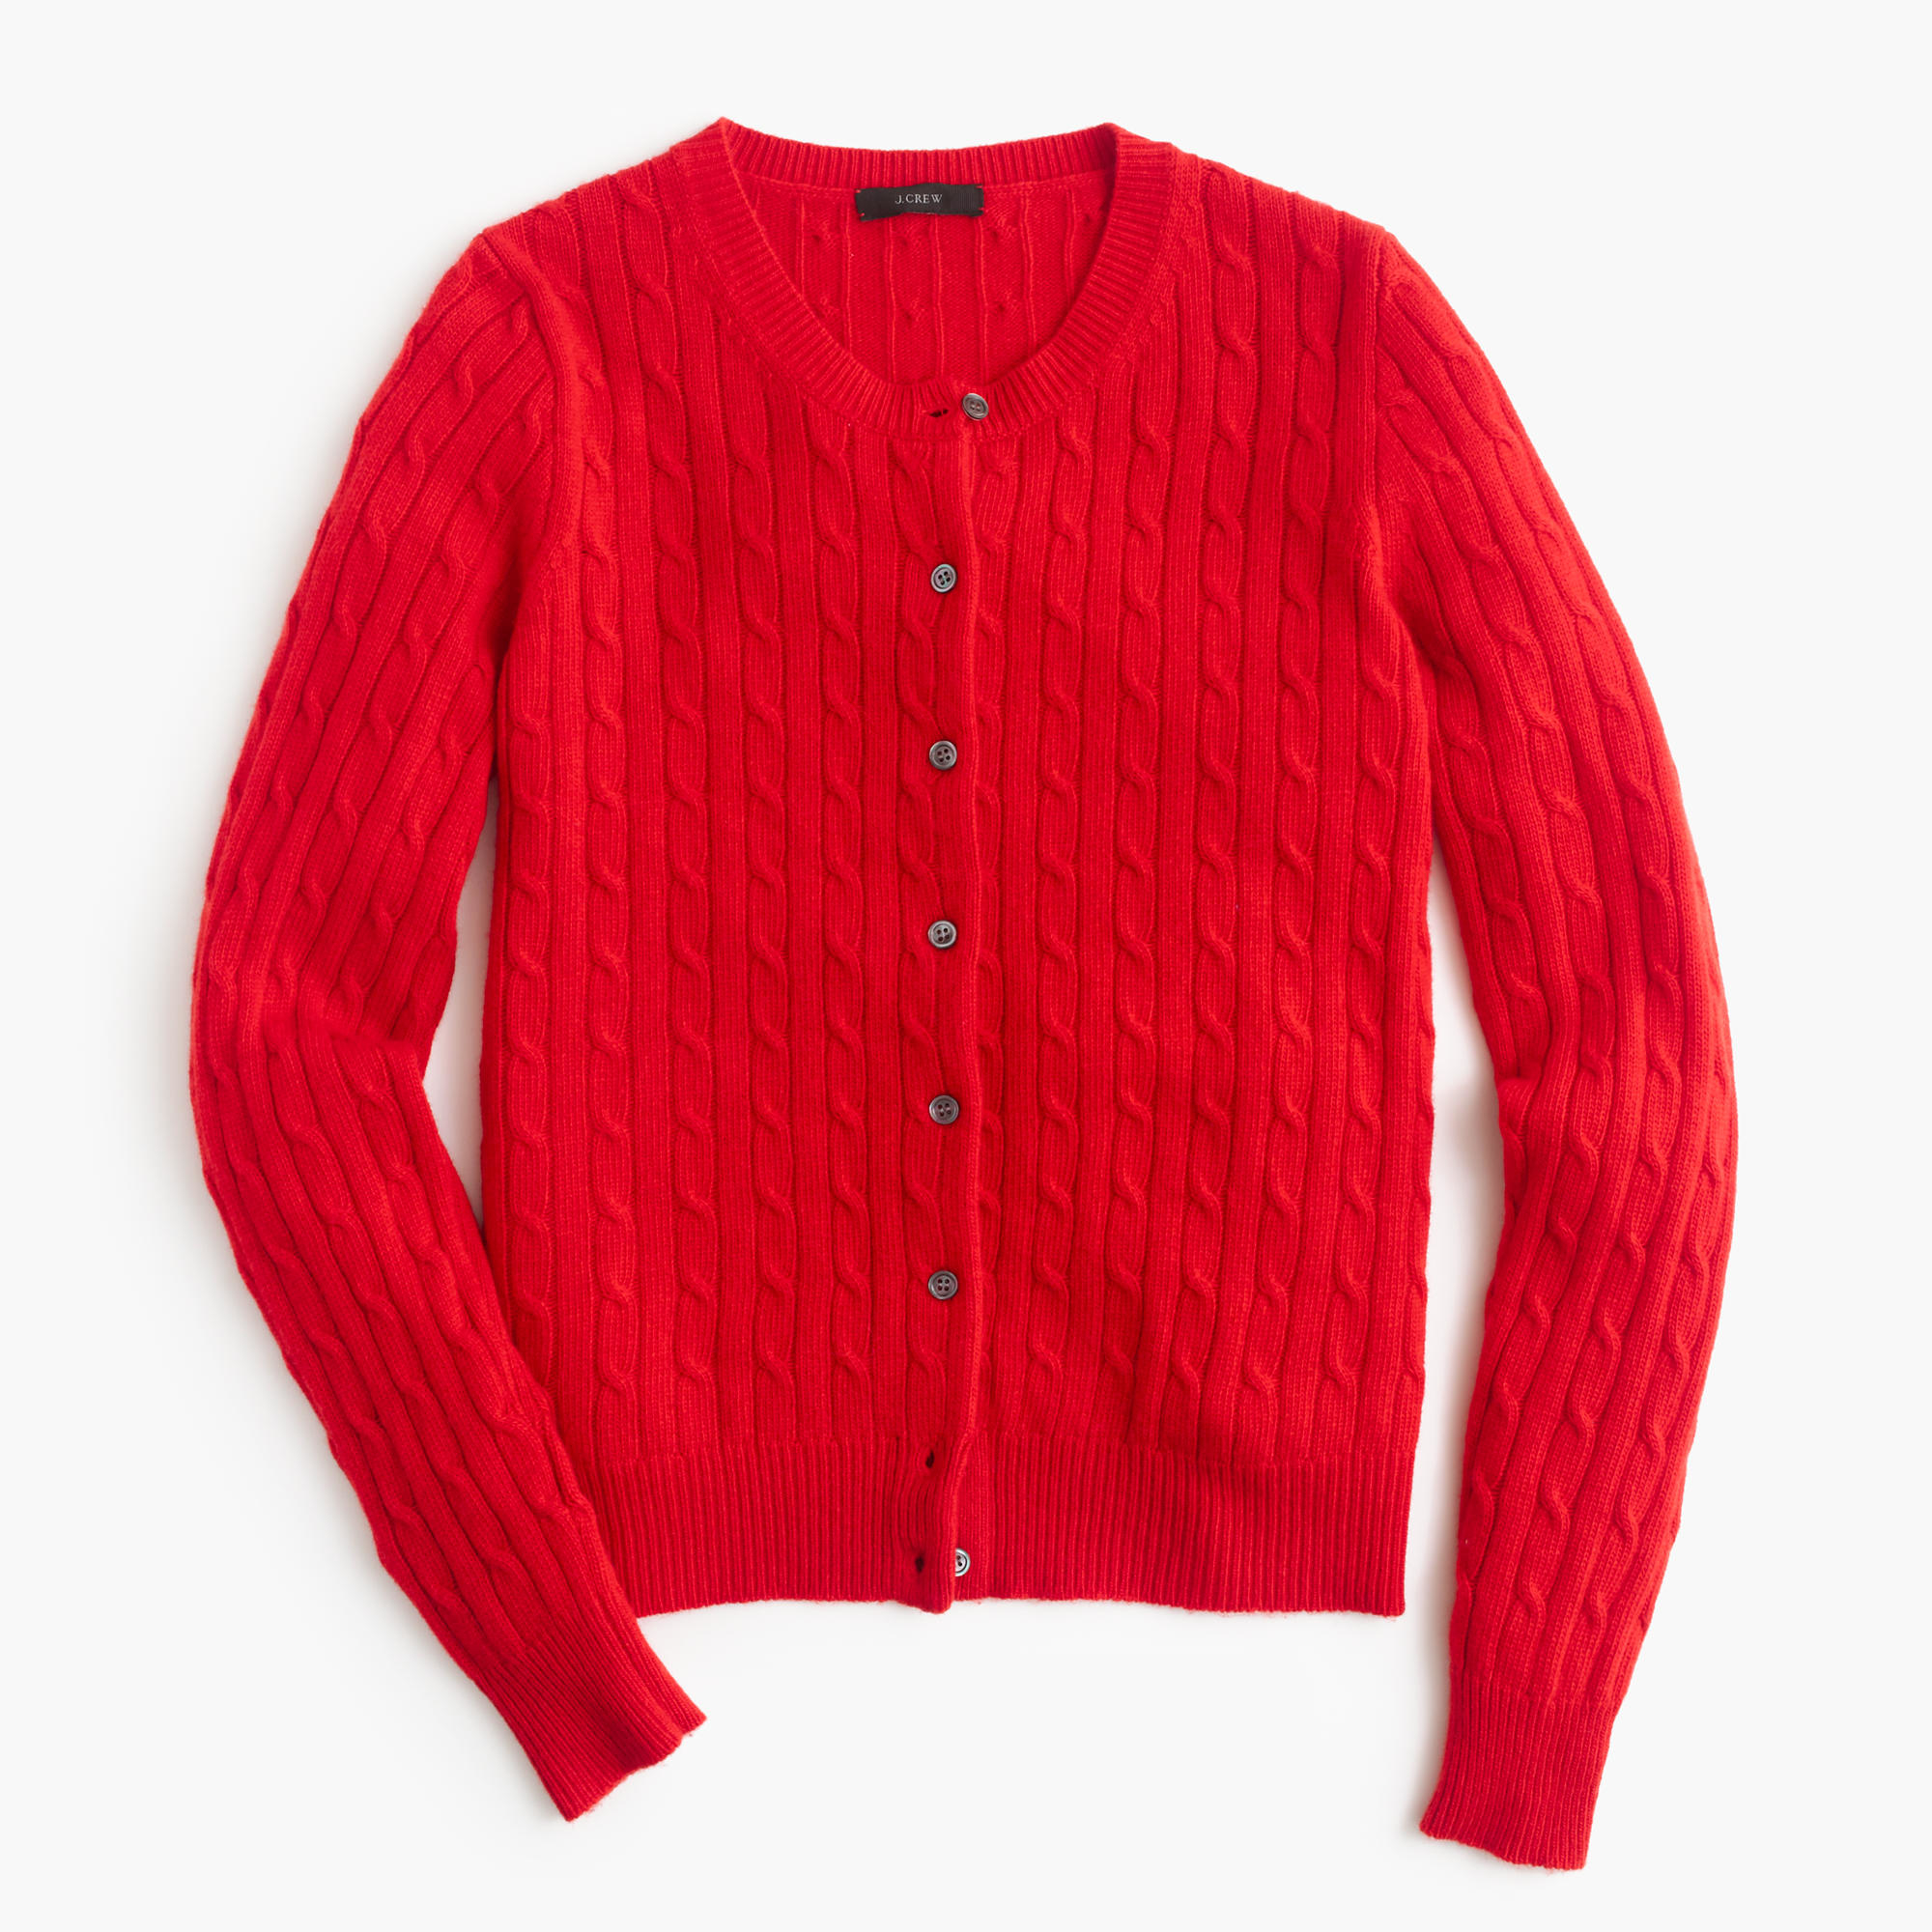 Petite Red Sweater 83